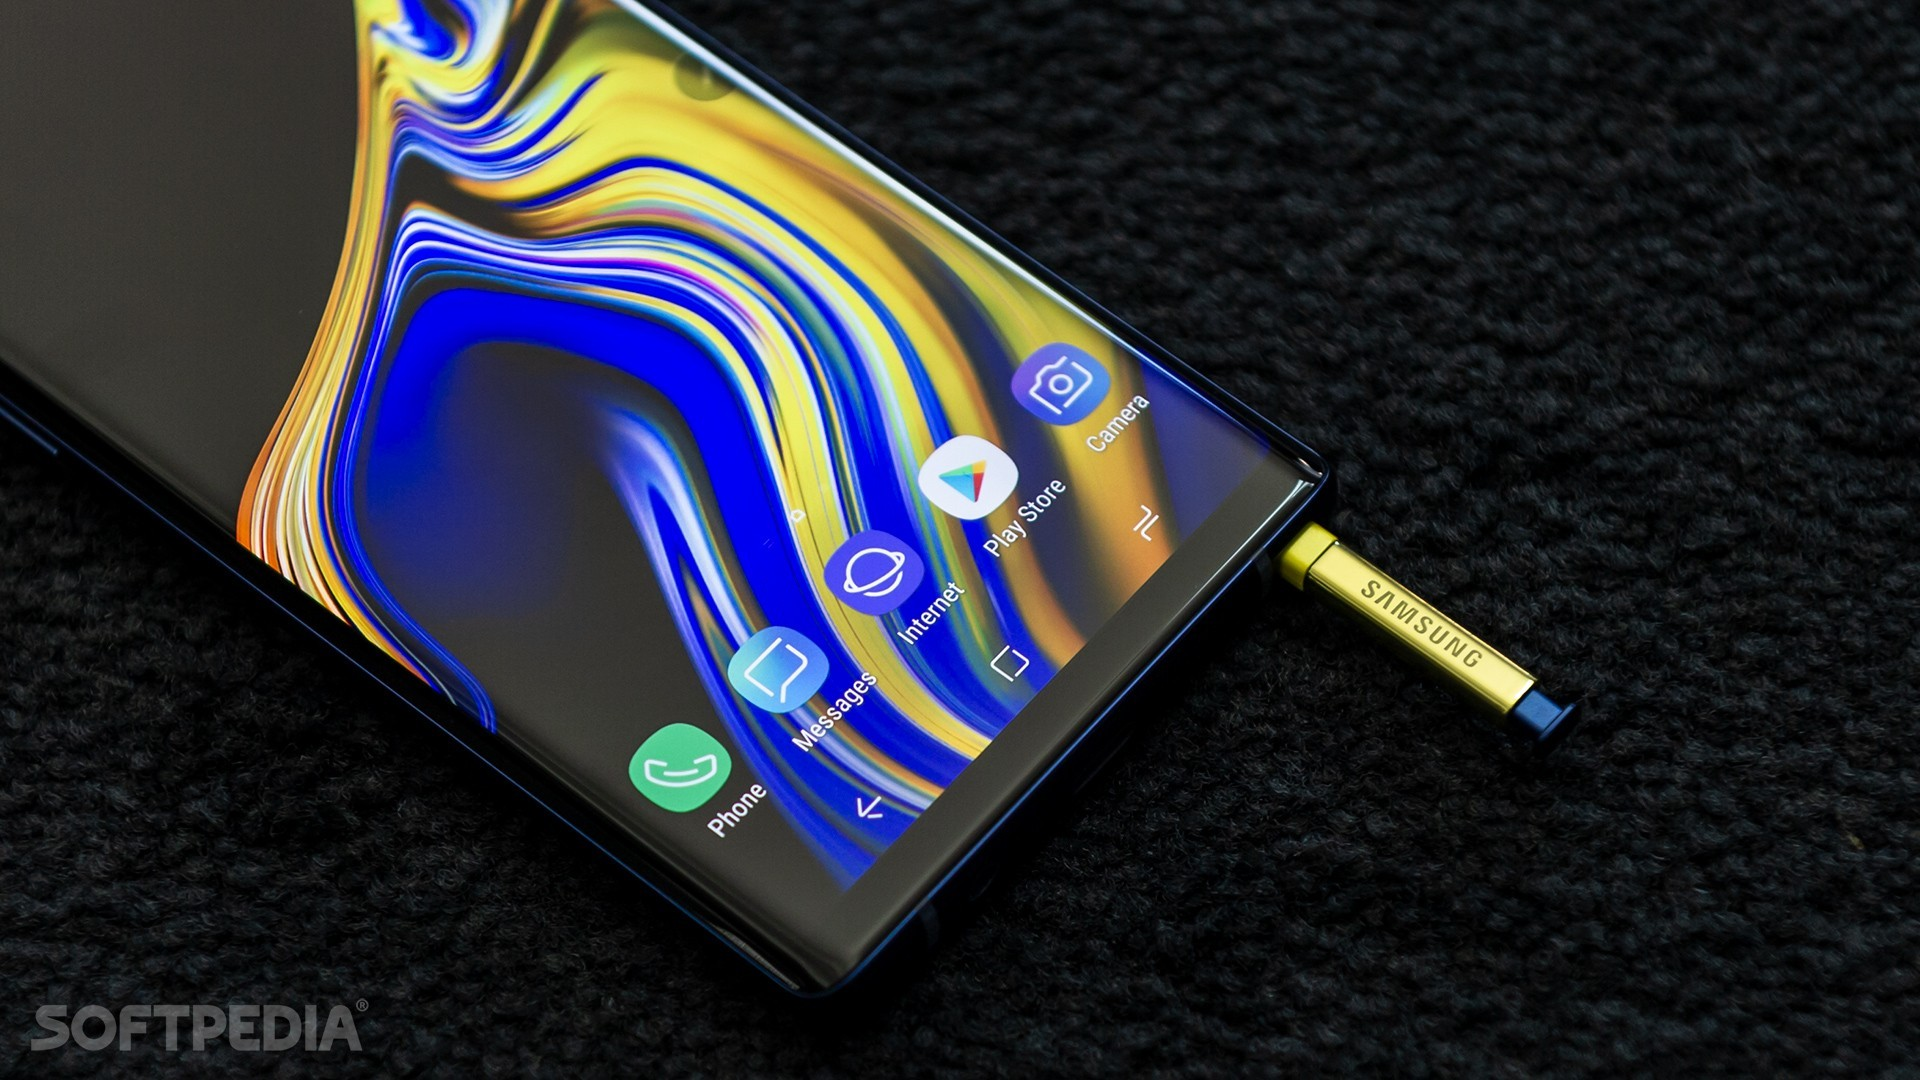 How to Remap the Bixby Key on Samsung Galaxy S8, S9, S10, Note 8